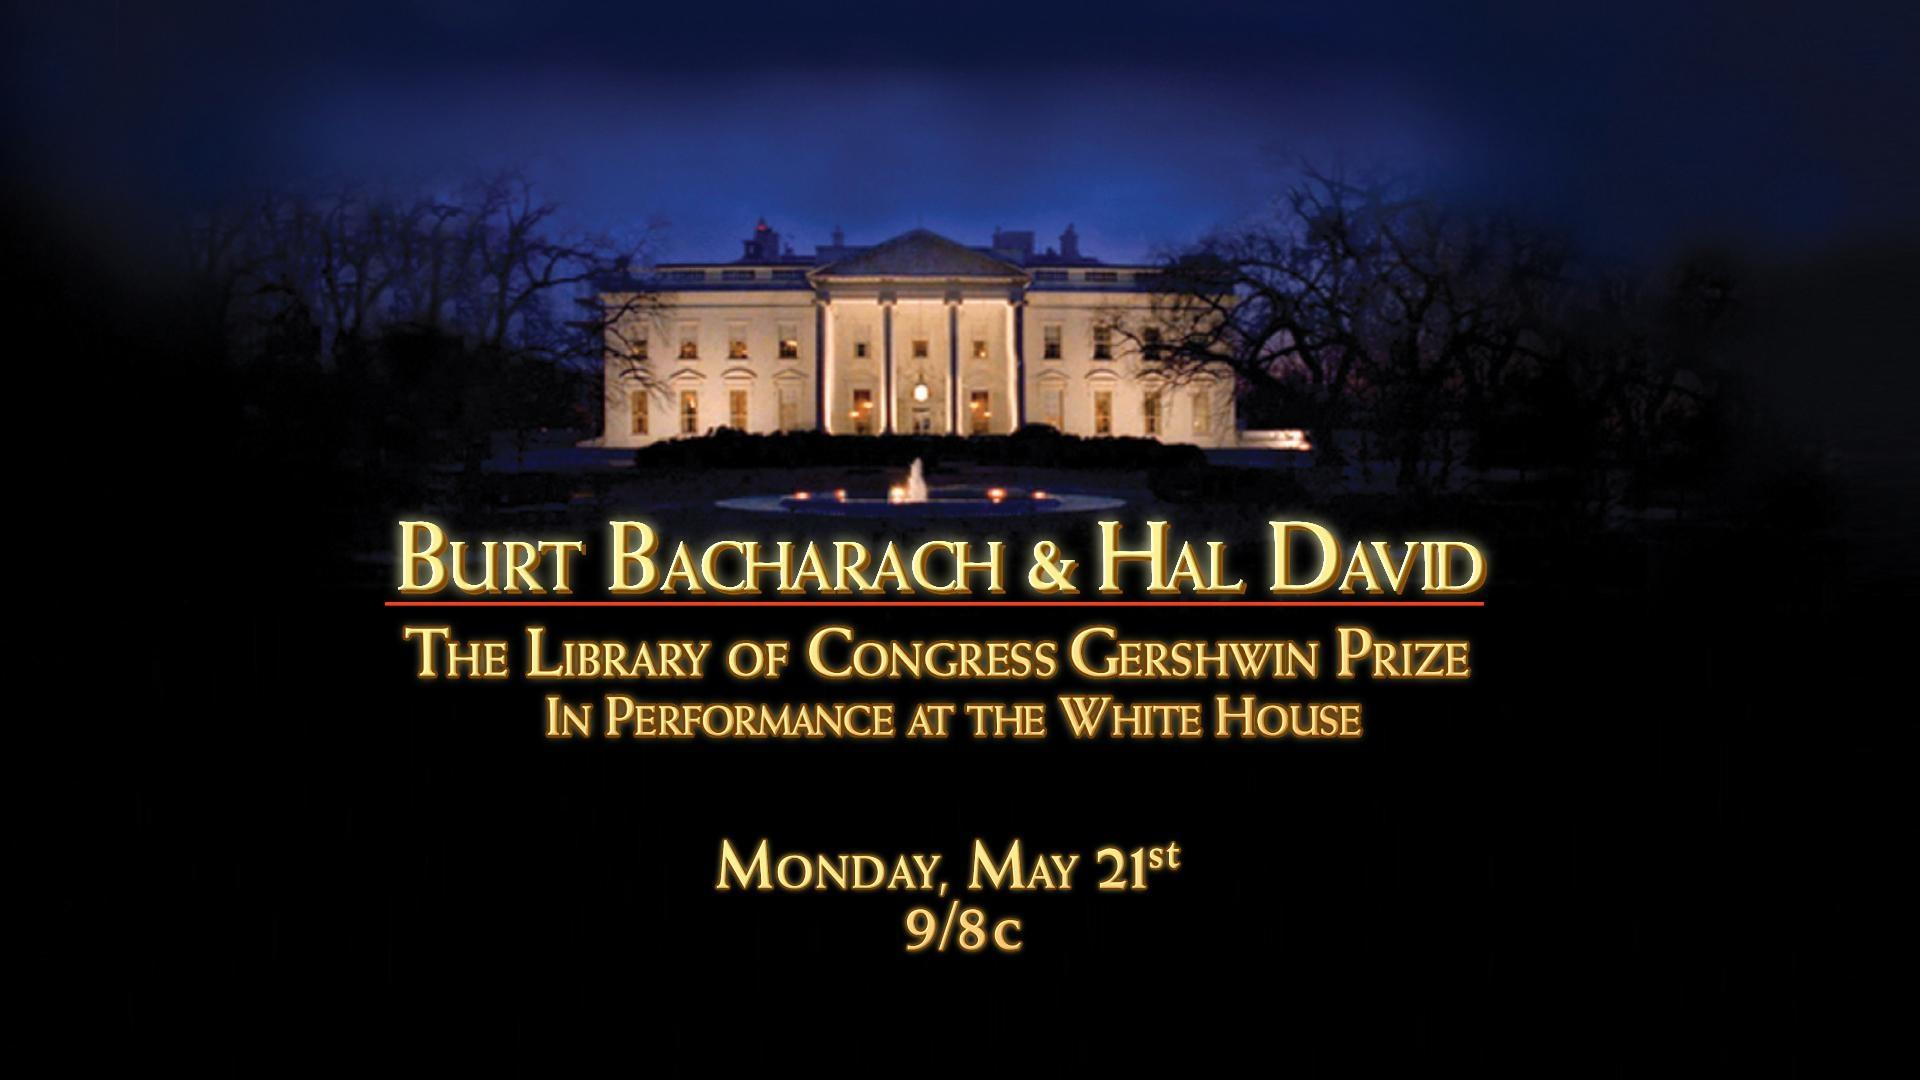 burt bacharach and hal david: the library of congress | in